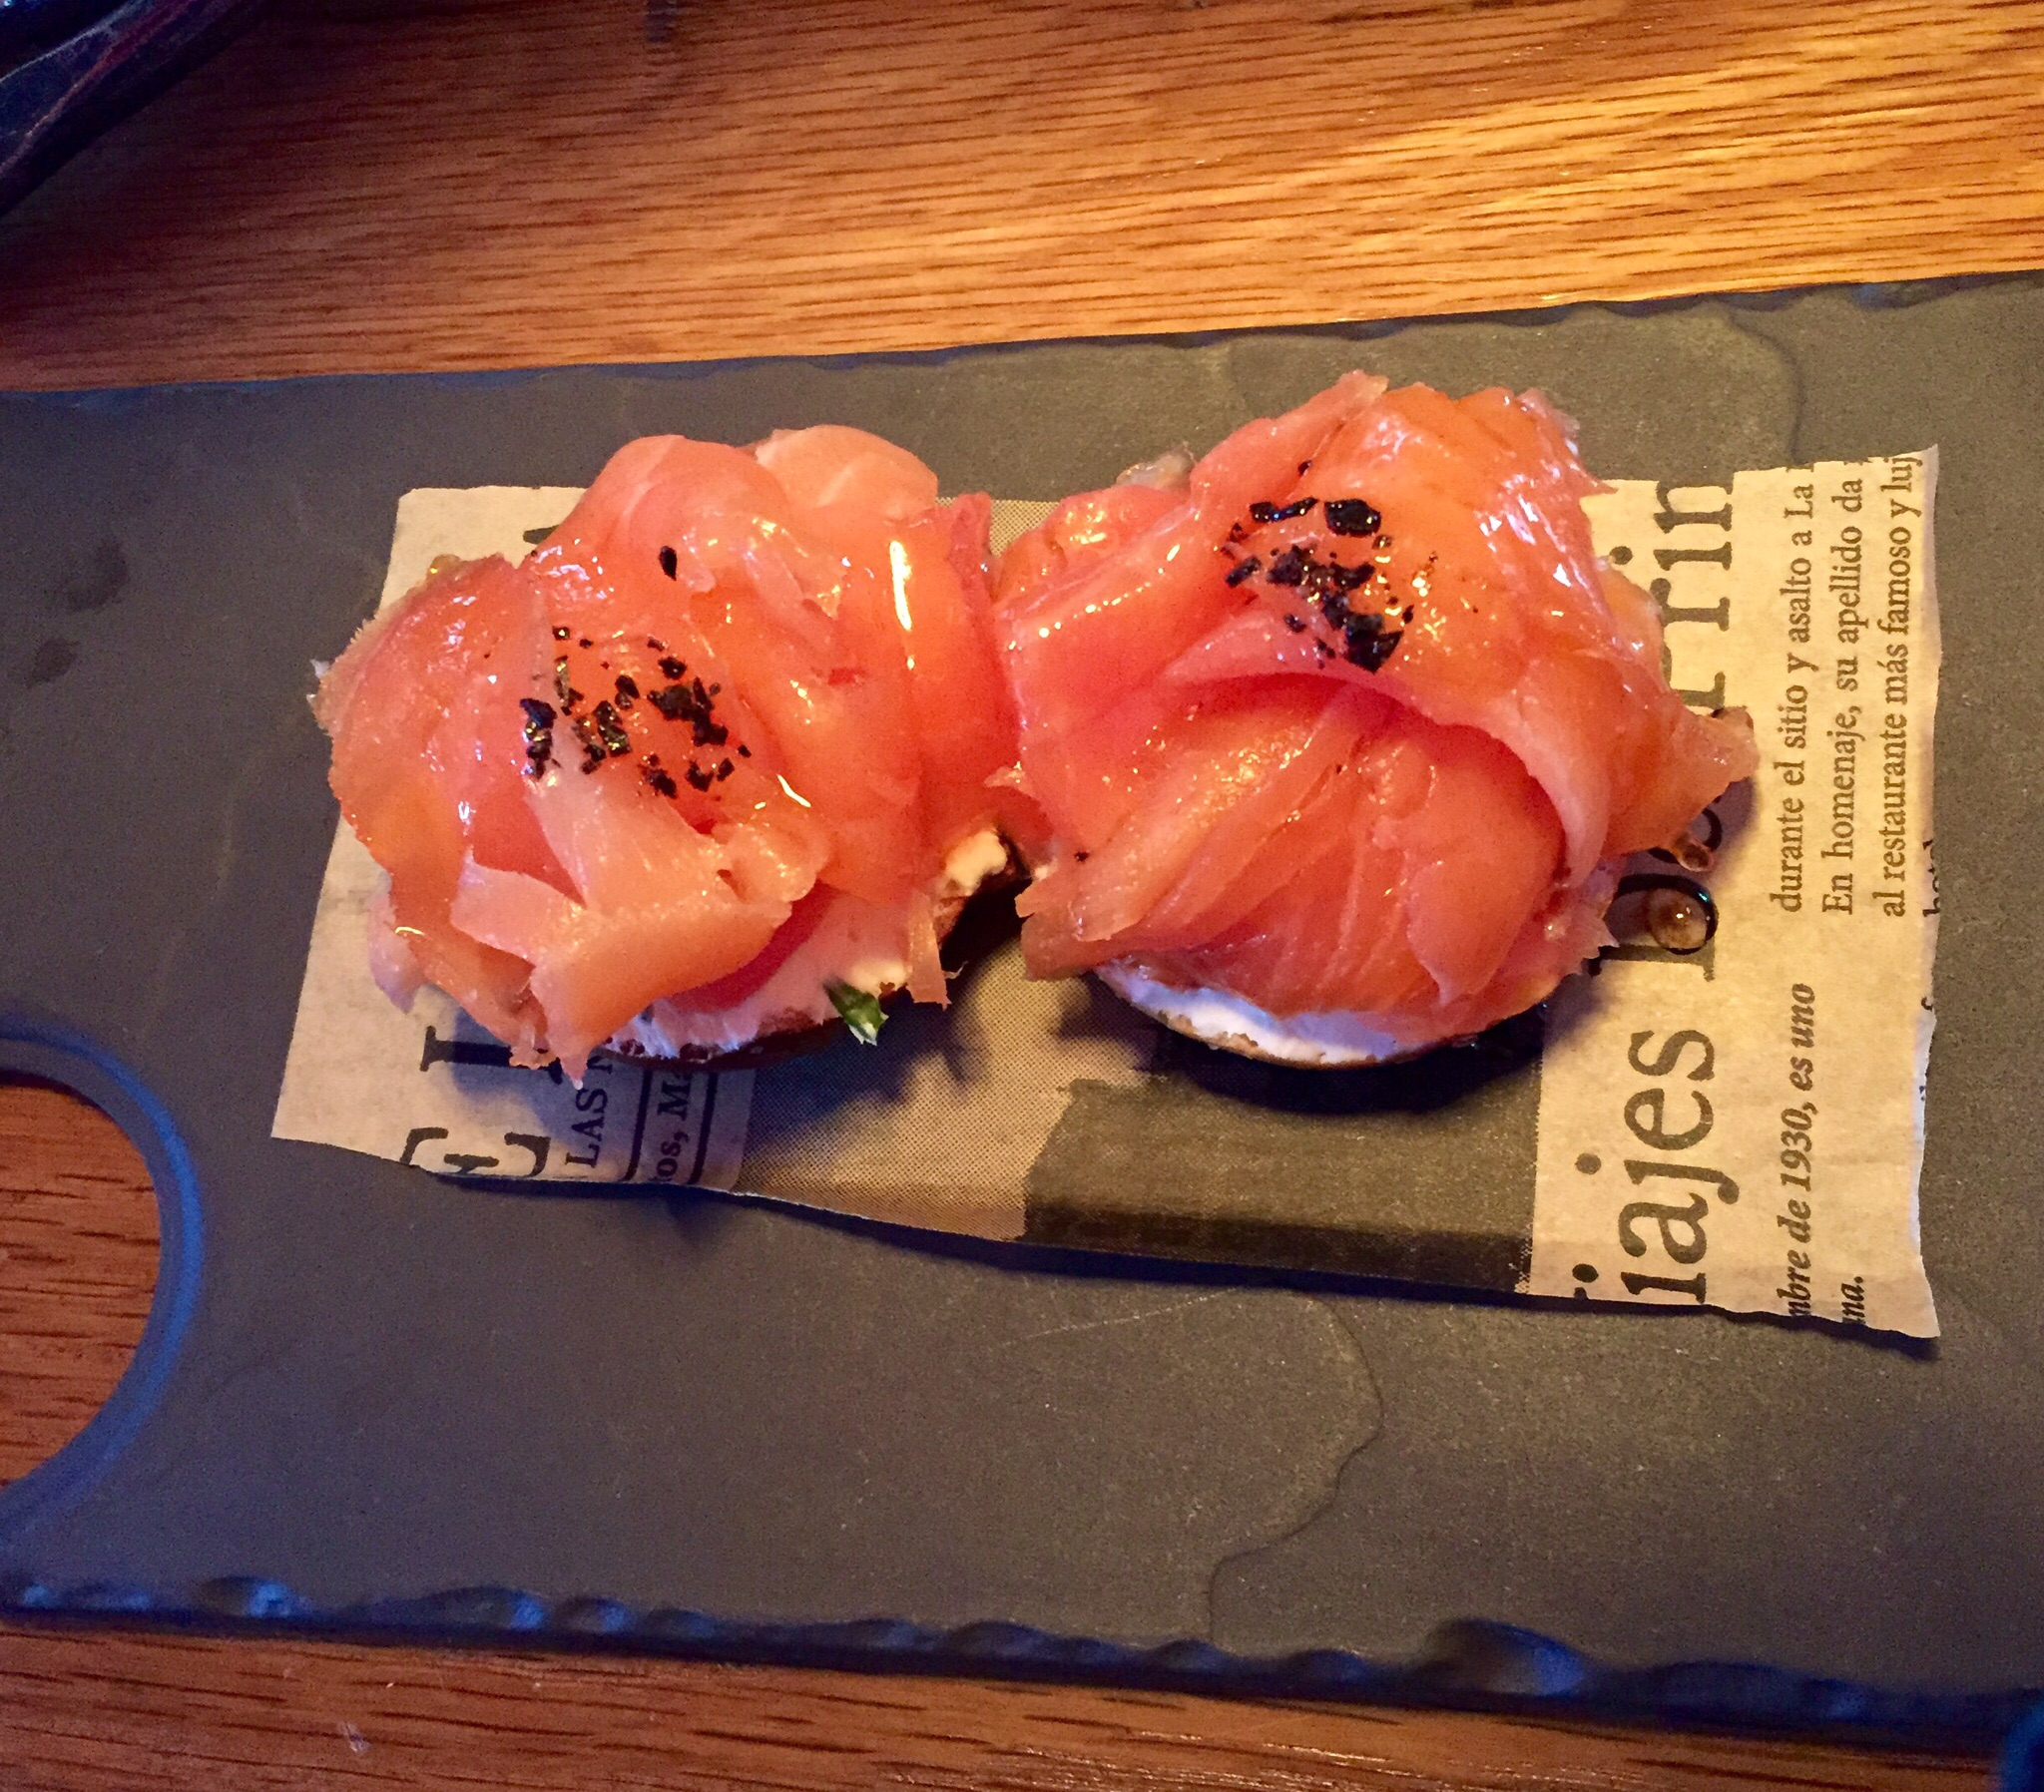 A new spin on bagels and lox at Coqueta. Photo by Shana Sokol, Shana Speaks Wine.